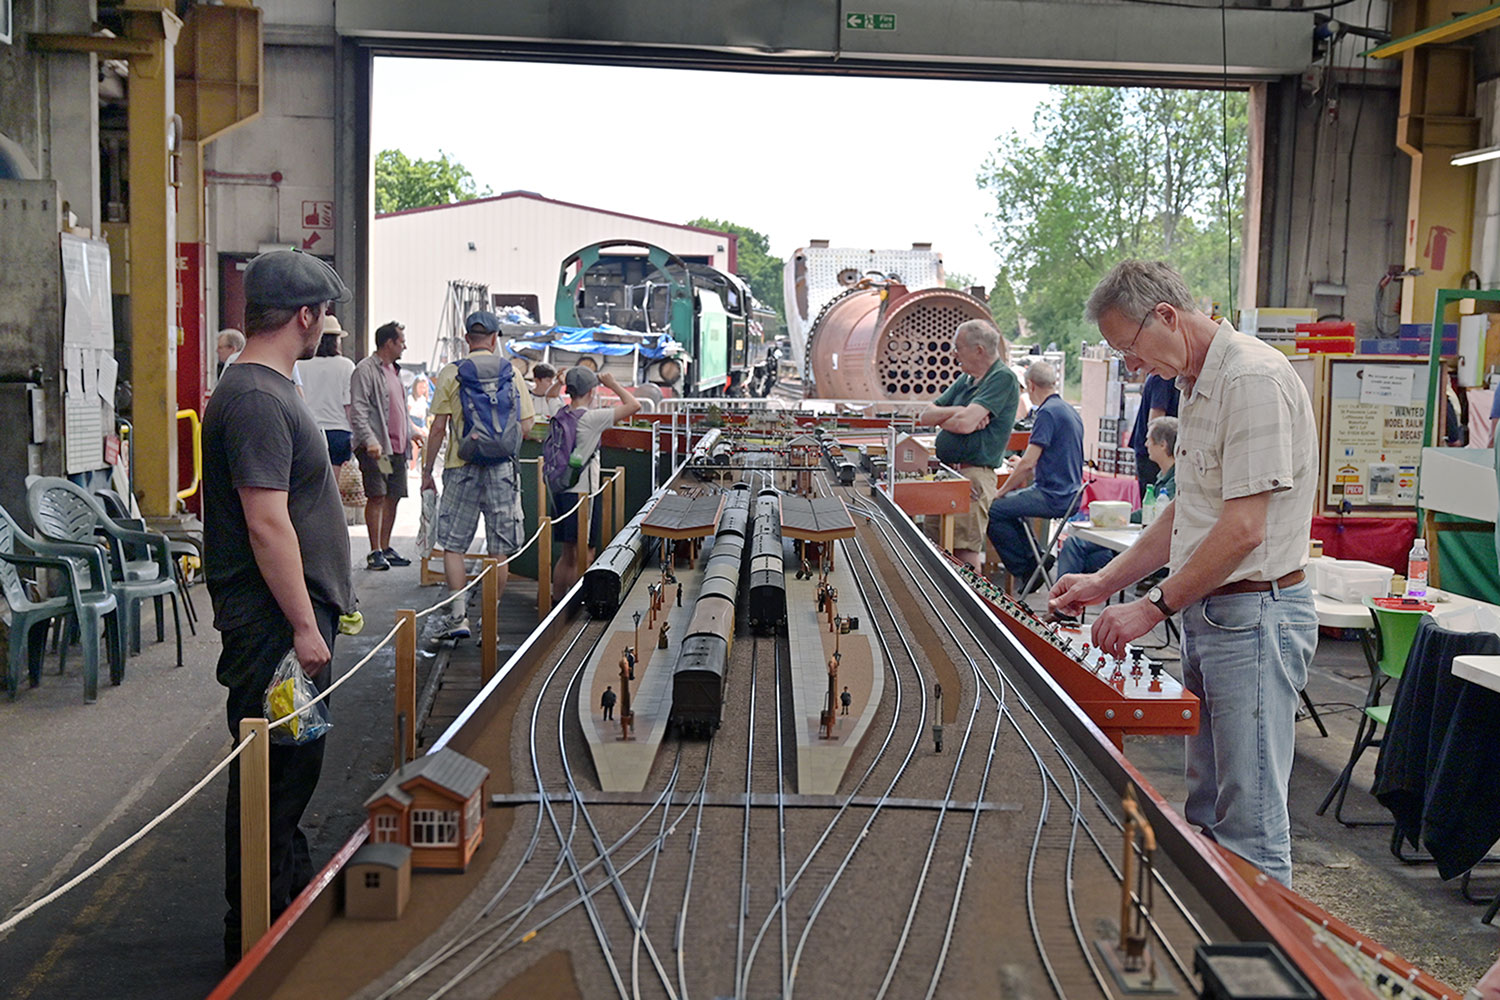 Blog: What's New at the Bluebell Railway?